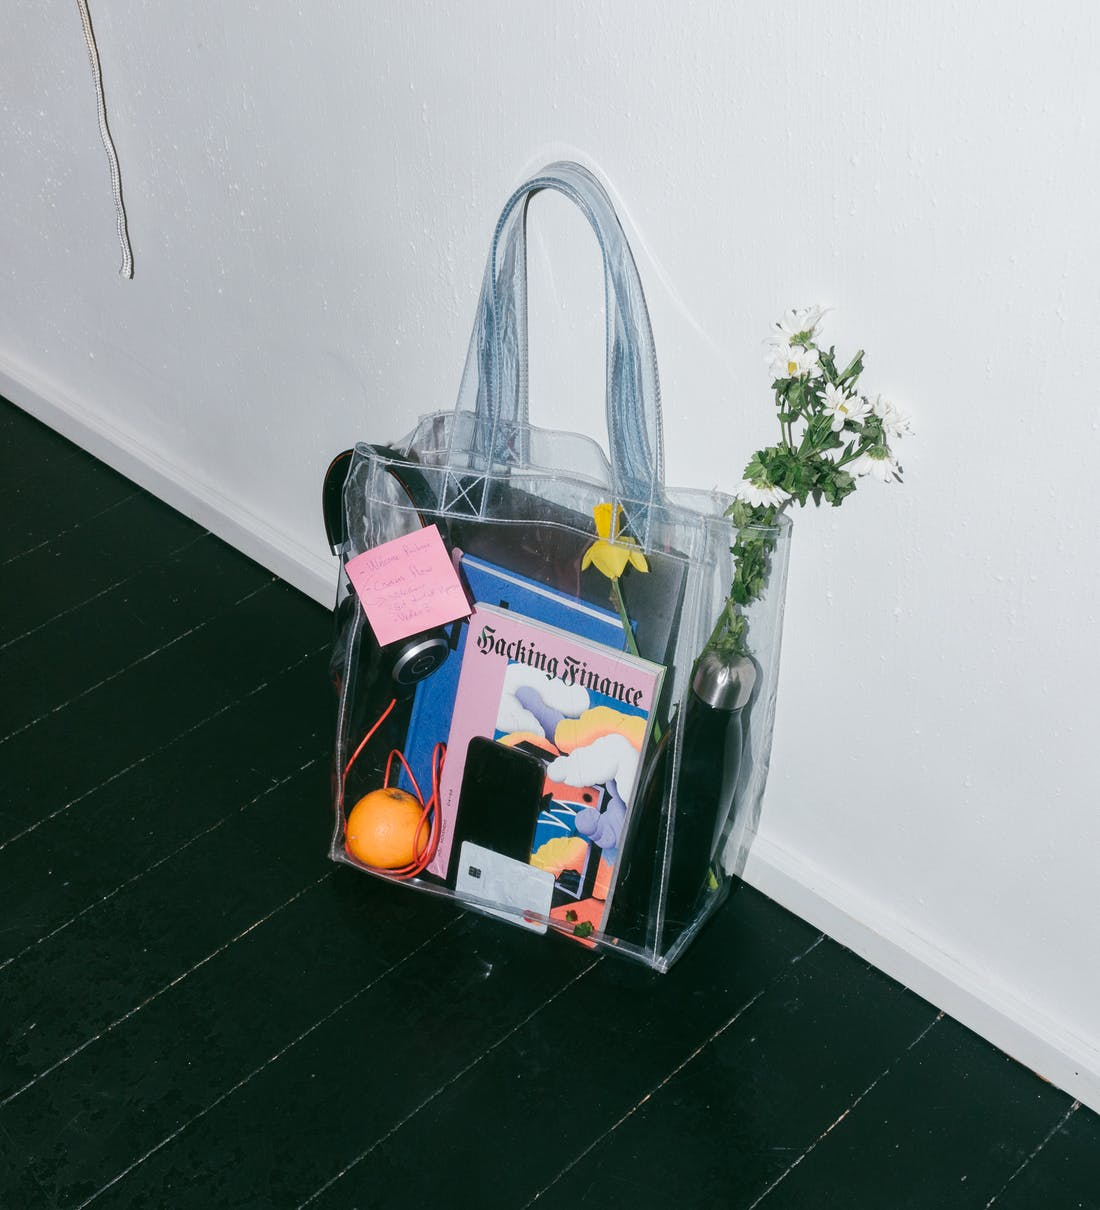 A clear bag containing an assortment of items